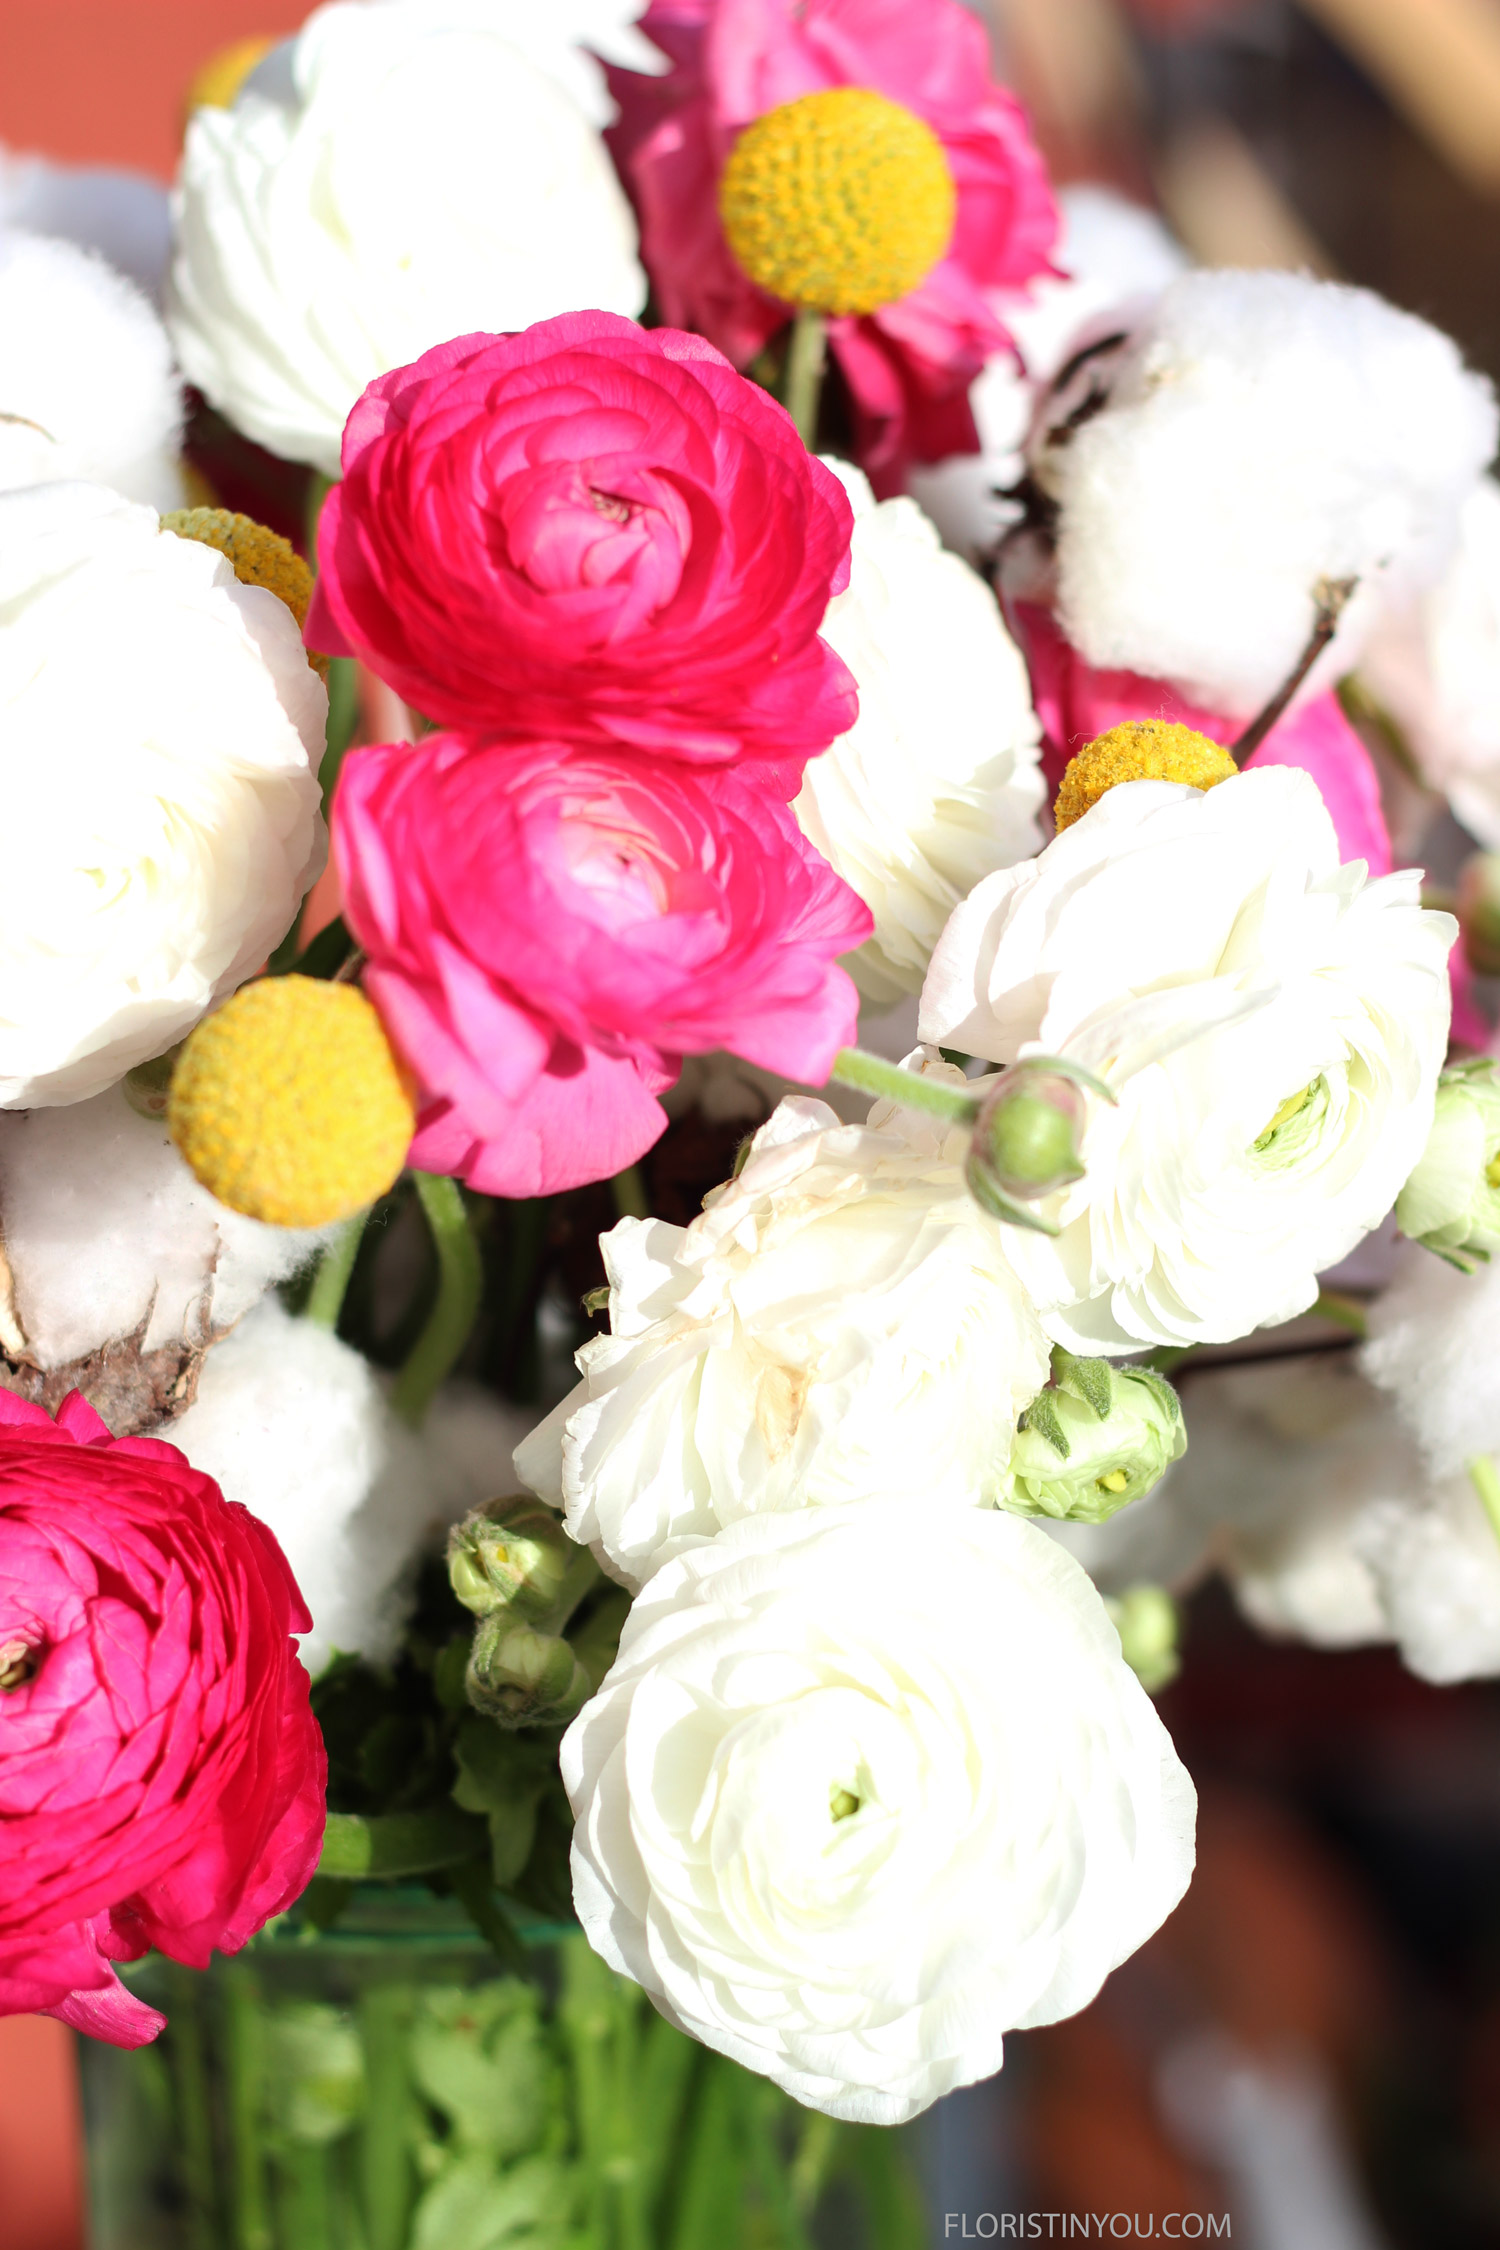 Add the buds with the Ranunculus. They have a wonderful look all their own.